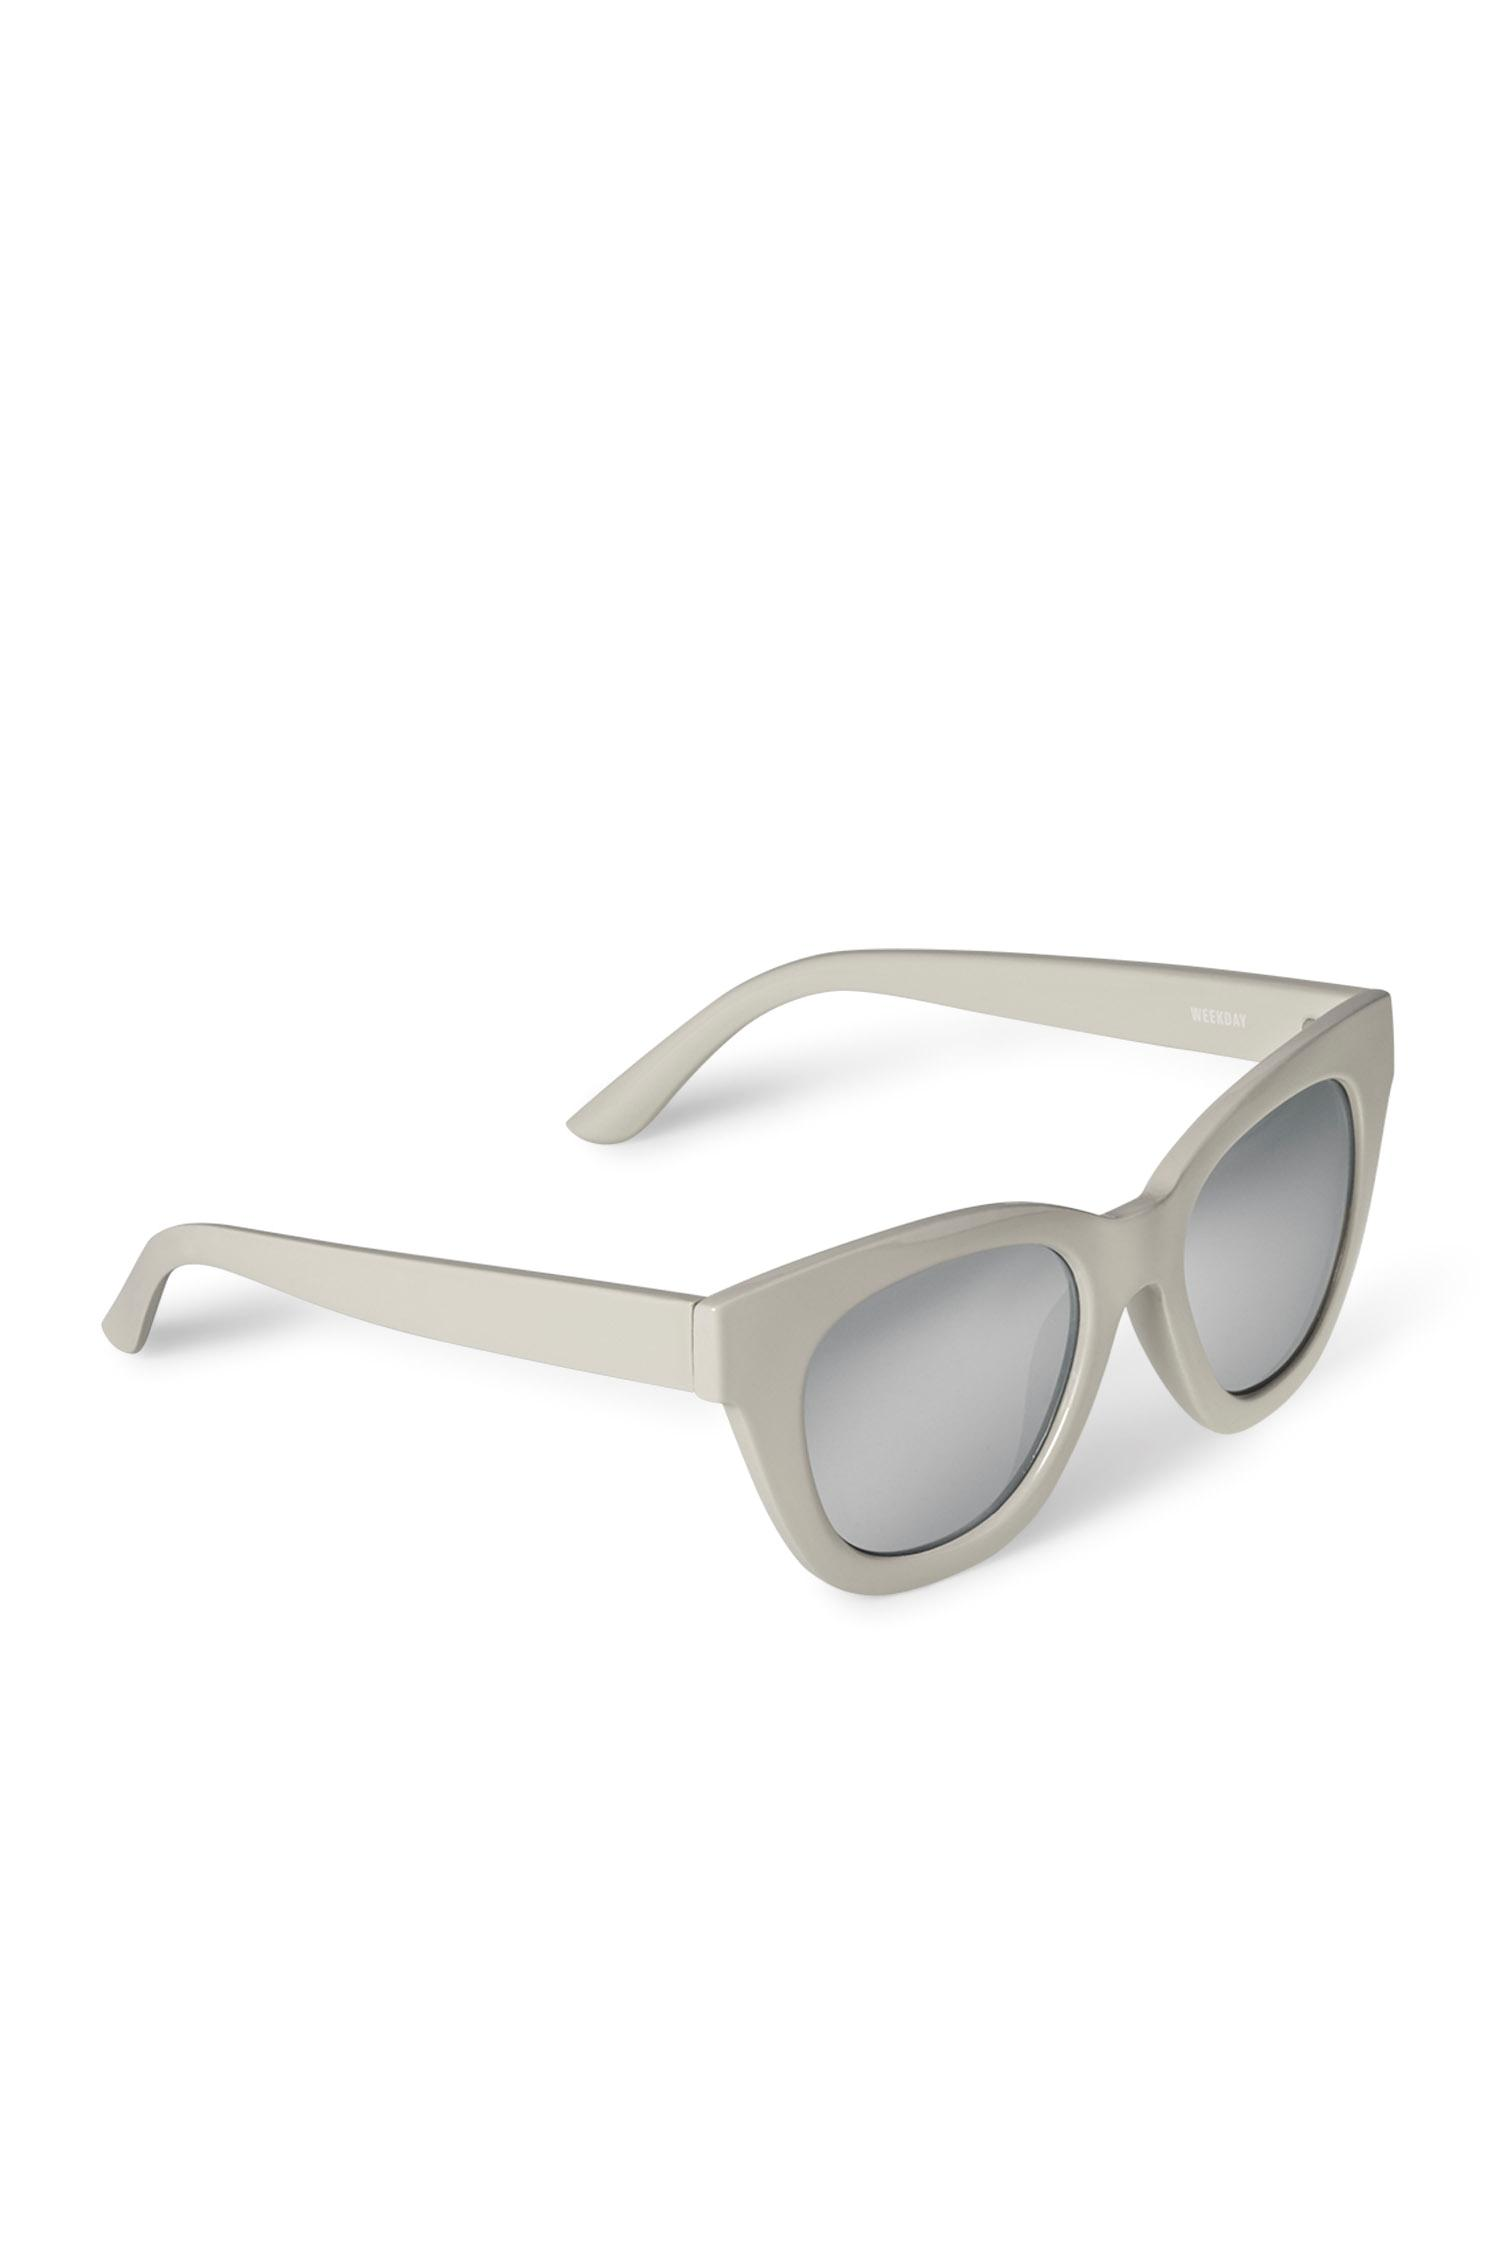 Weekday Jetlag Cateye Sunglasses